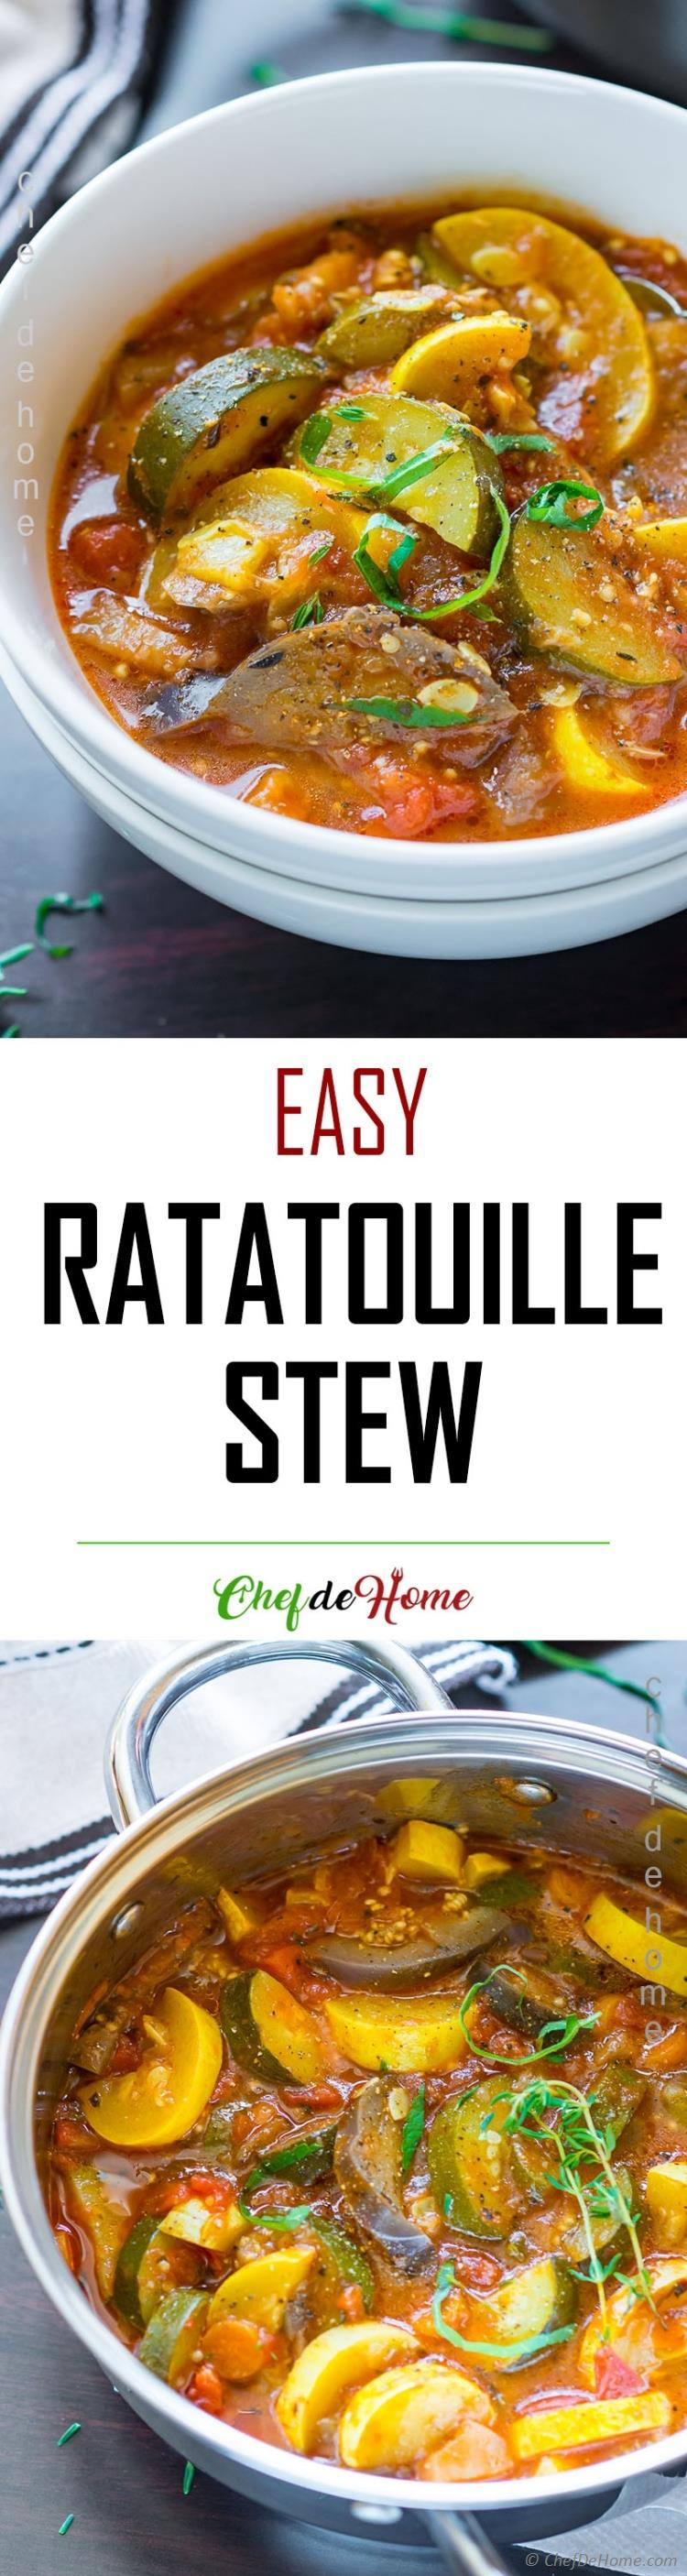 Healthy and Easy Ratatouille Recipe prepared like stew